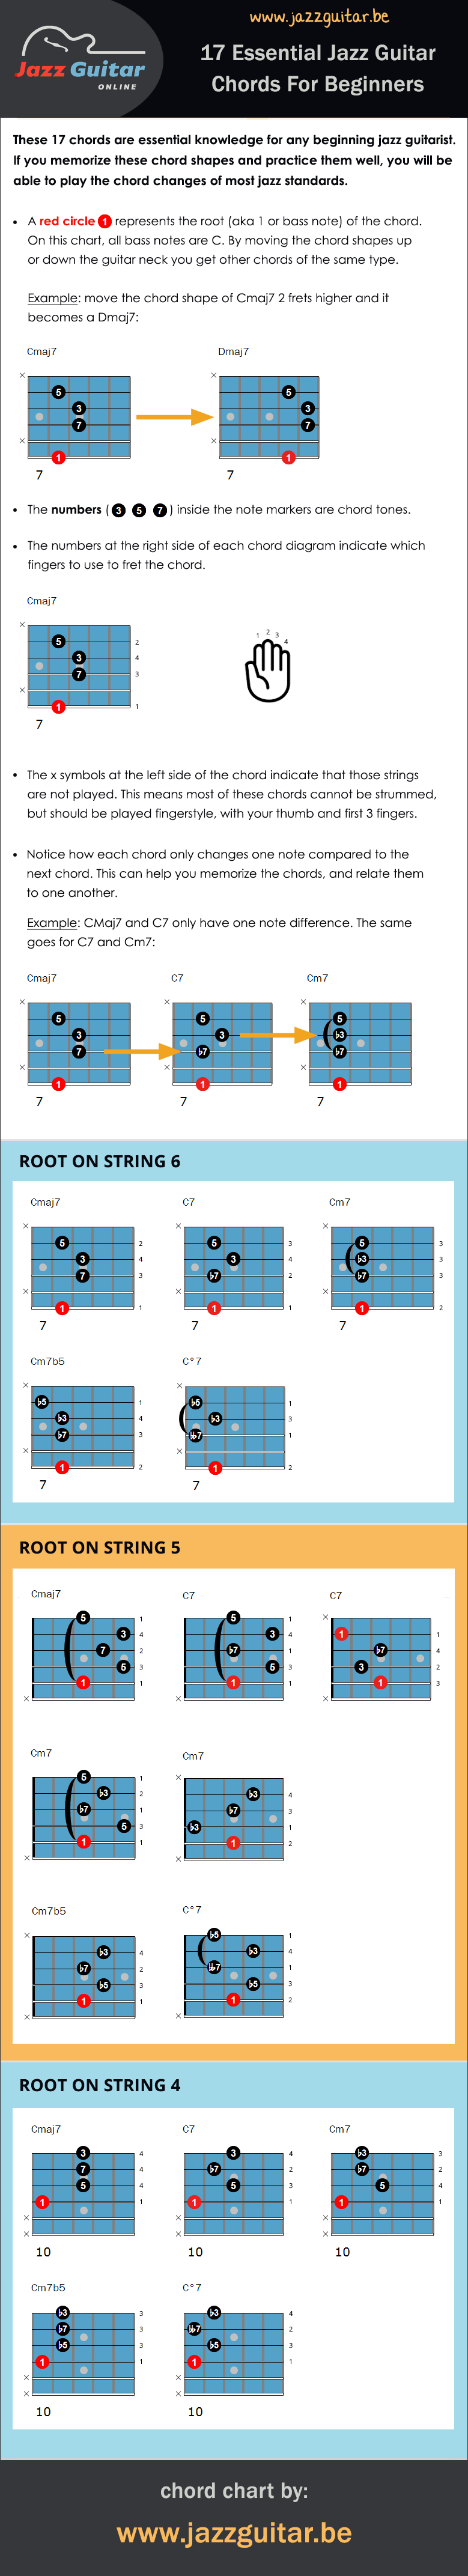 Top 17 Easy Jazz Guitar Chords For Beginners Chord Chart